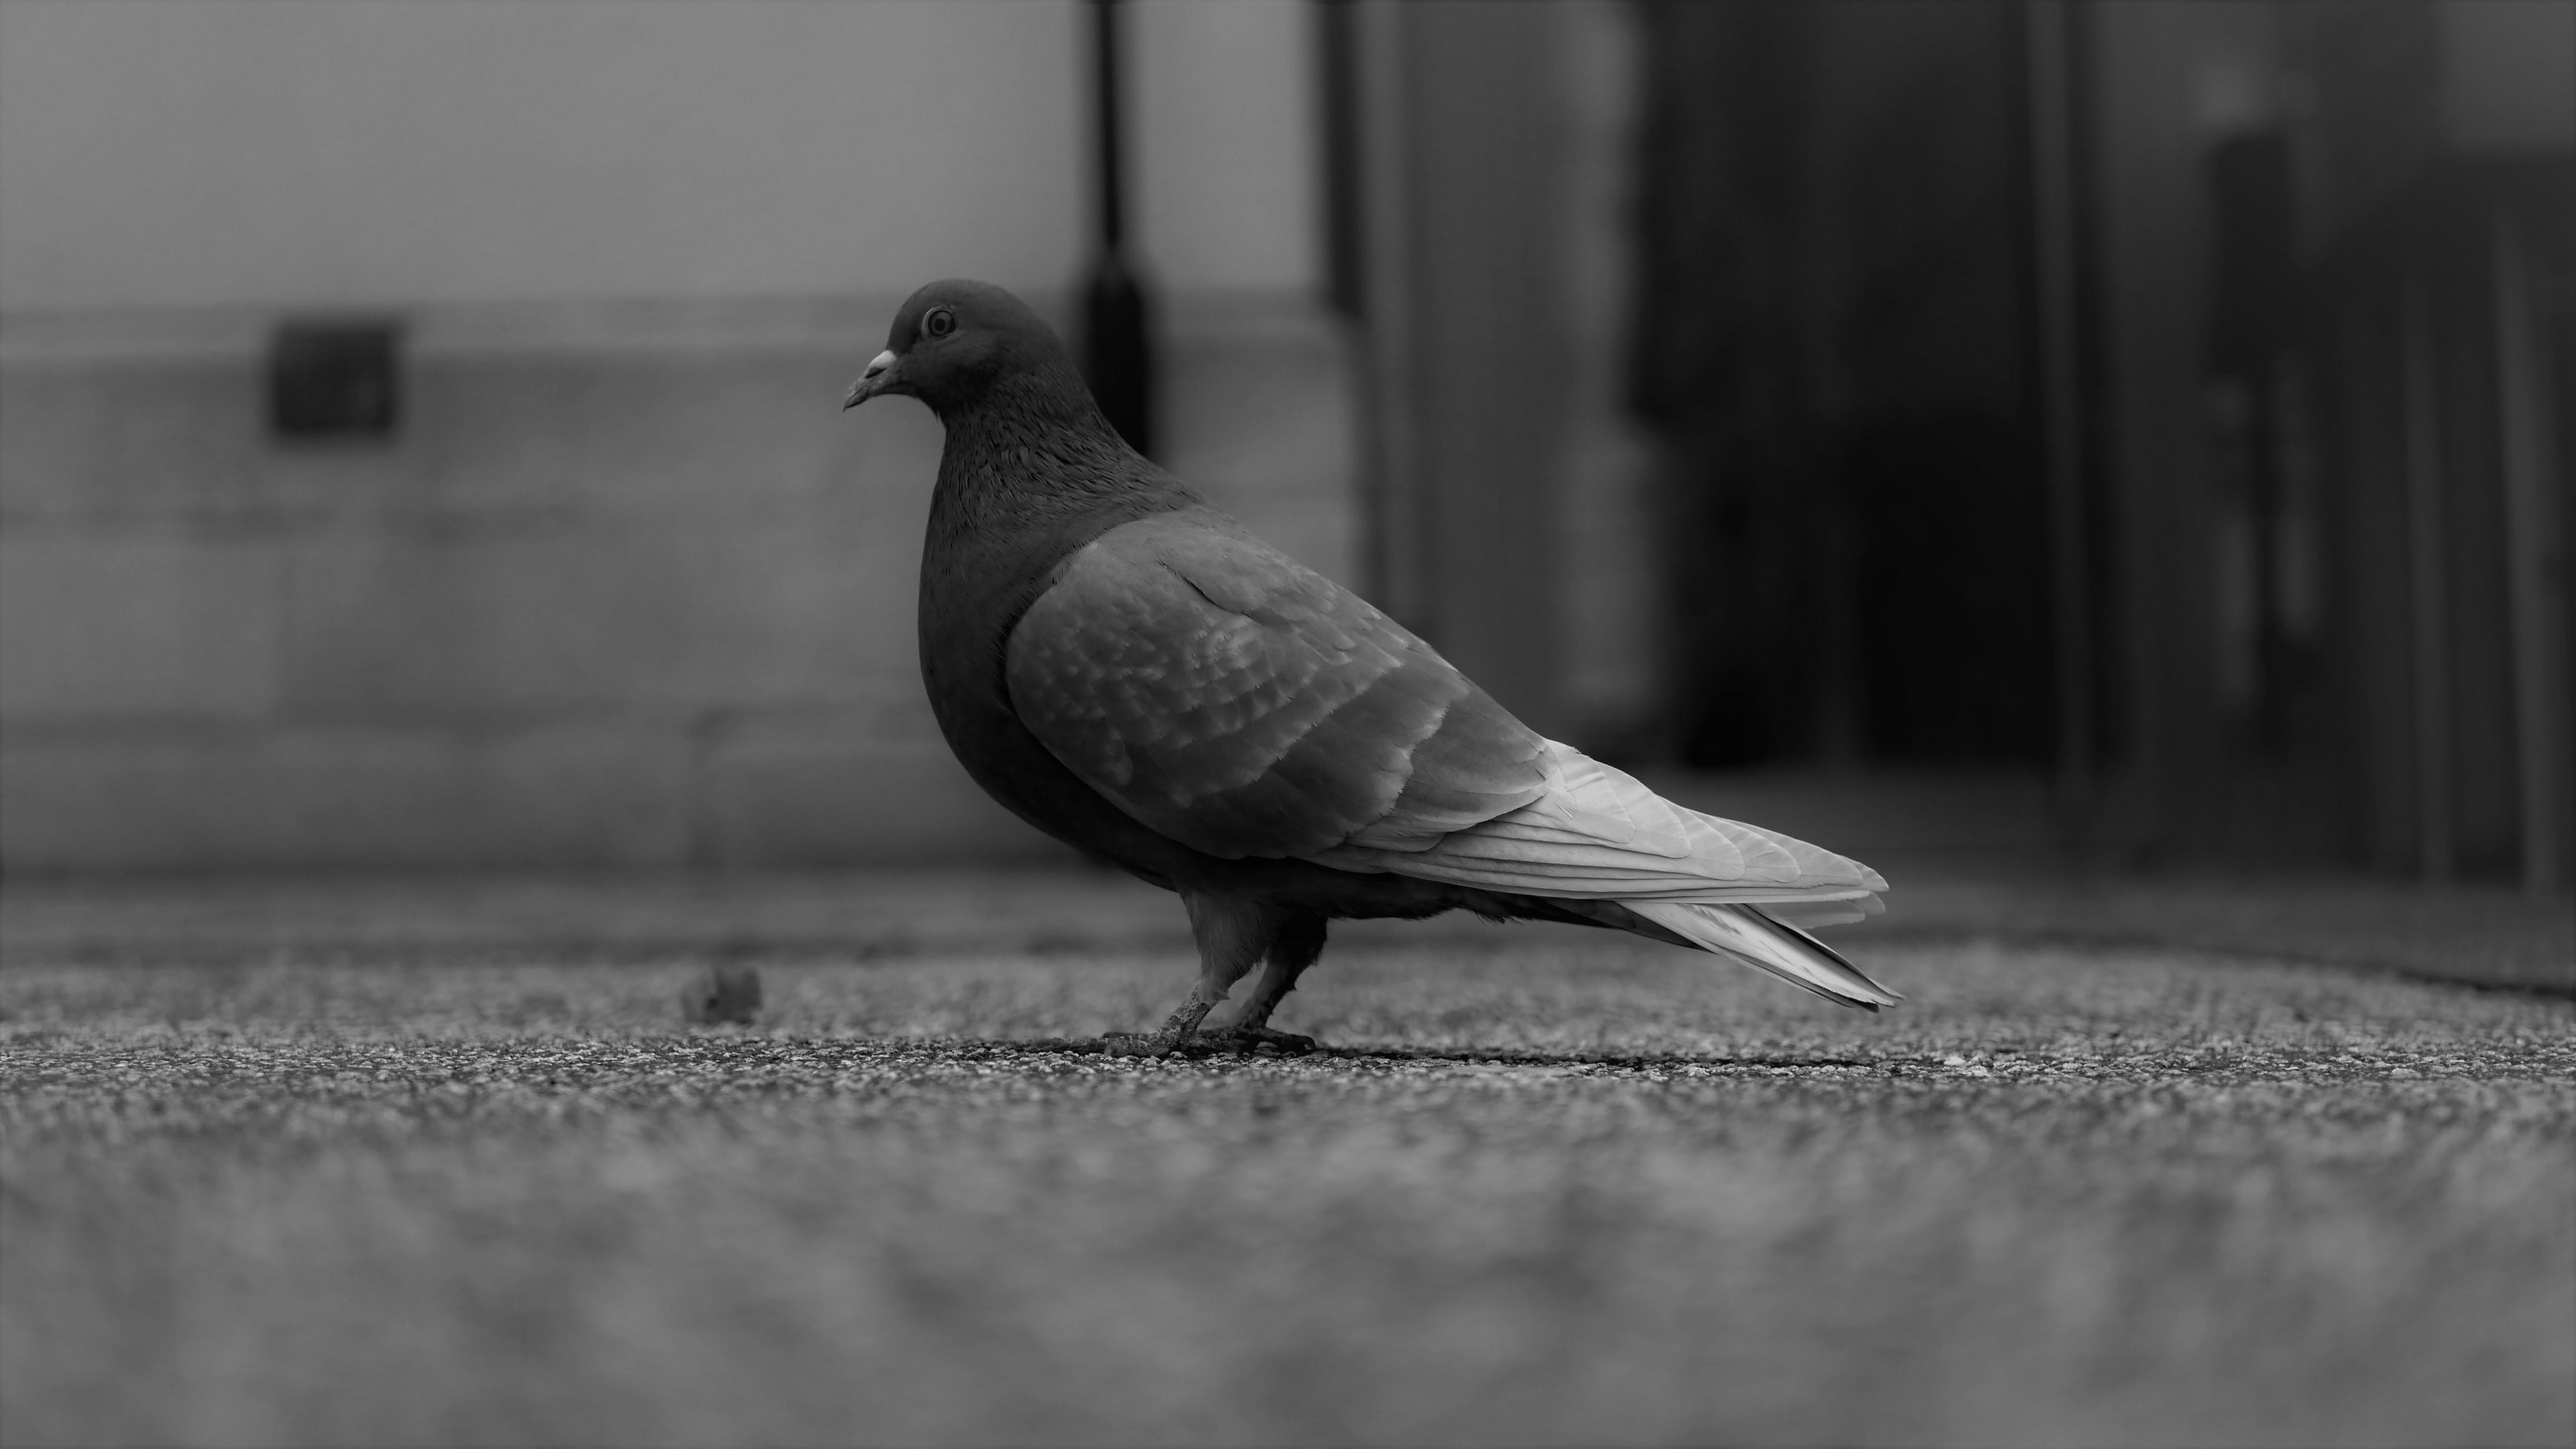 Grayscale Photo of Pigeon Standing on Ground